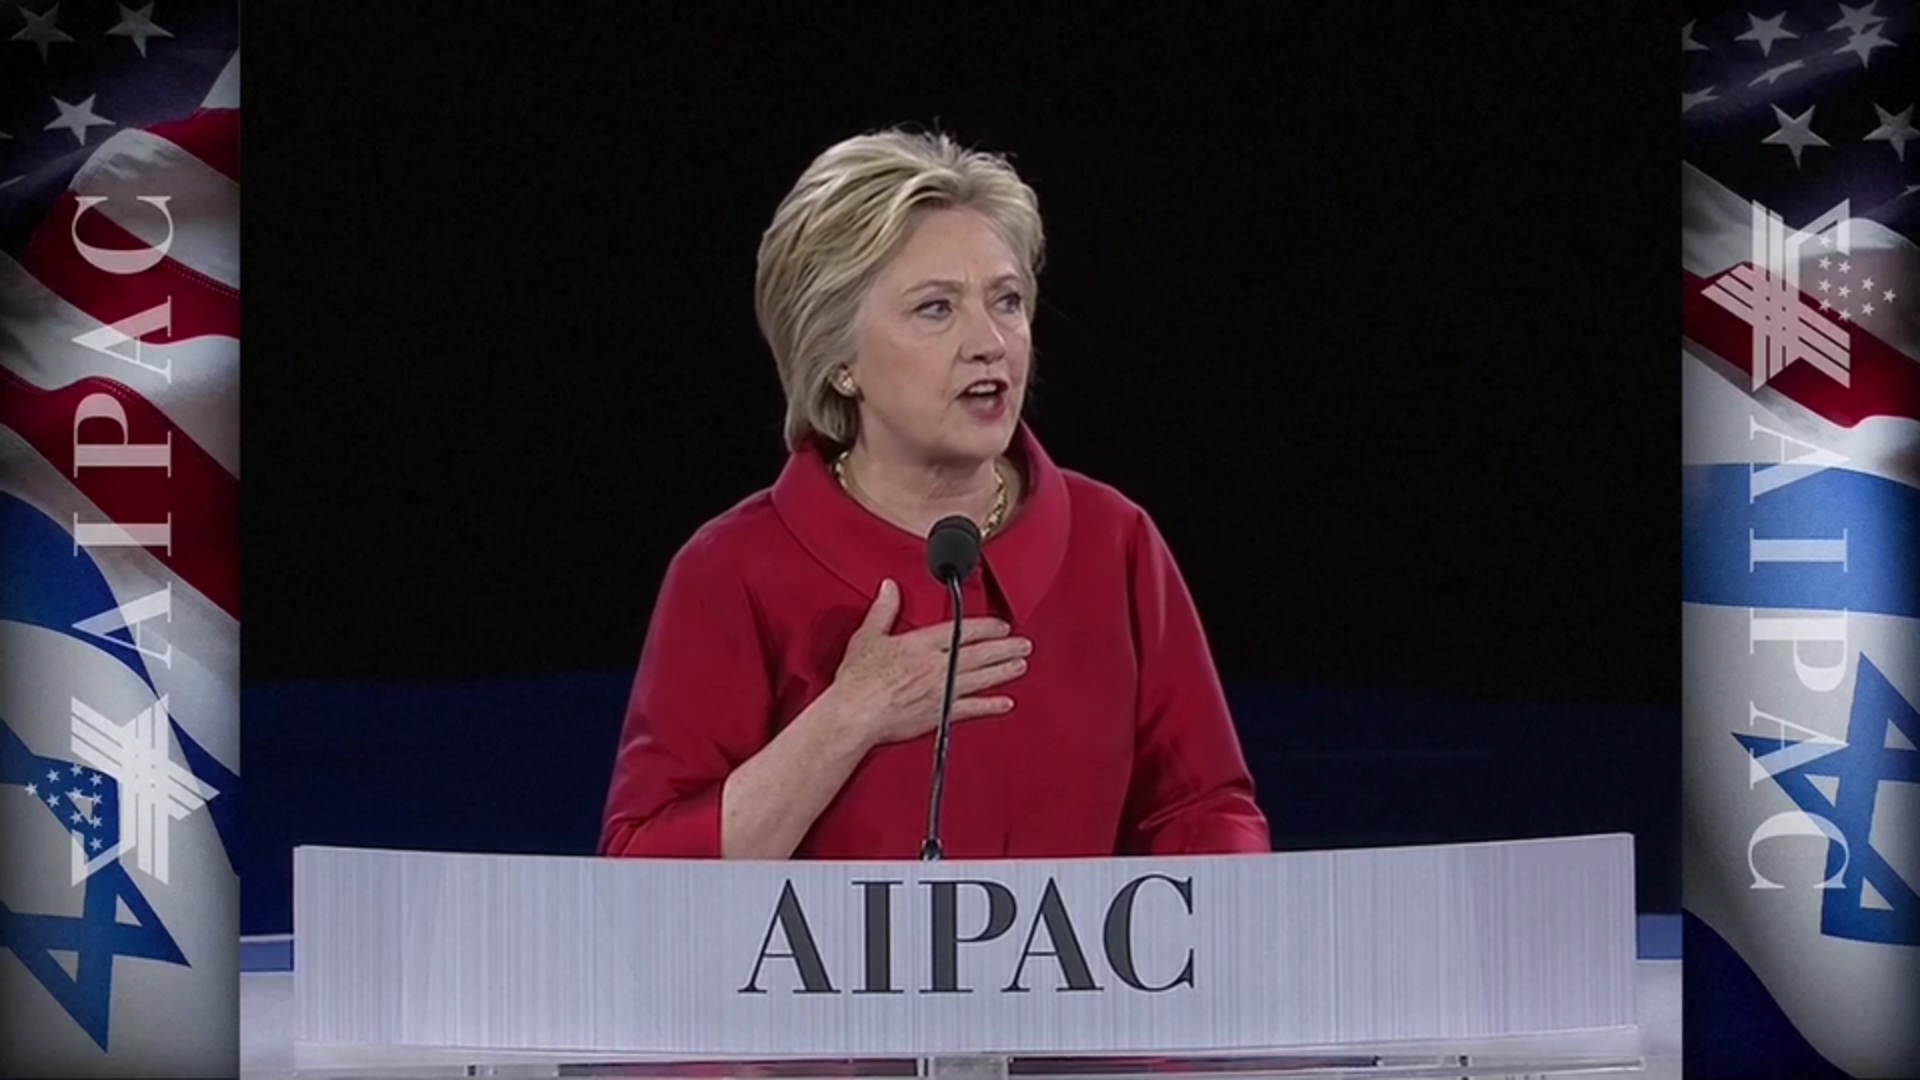 Hillary Clinton and AIPAC